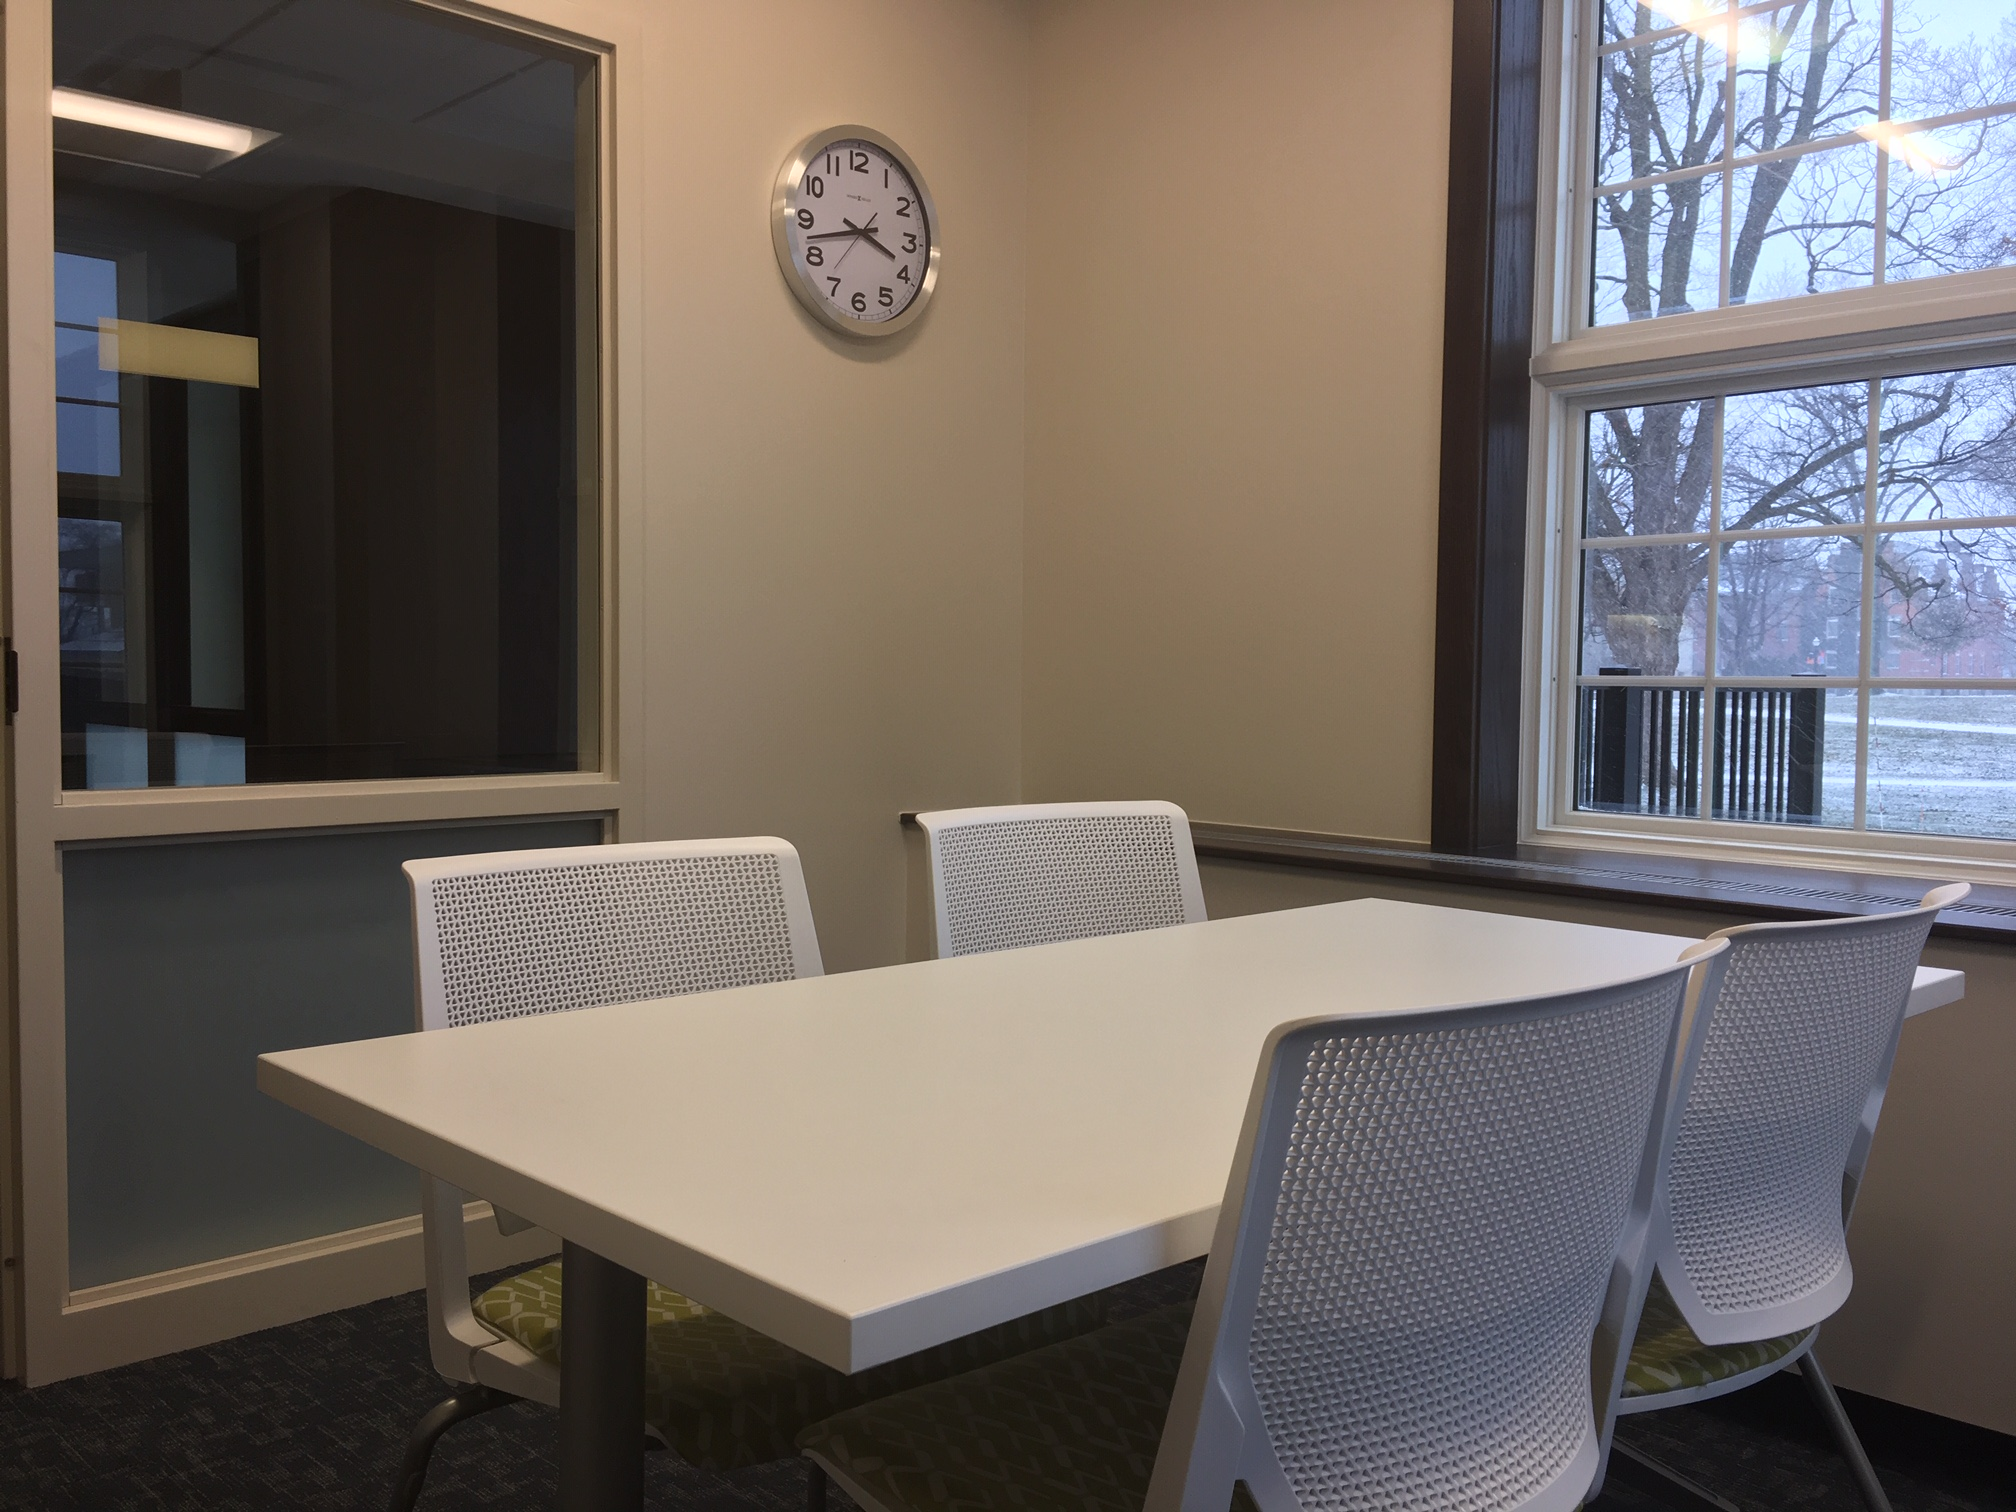 Medium group study room